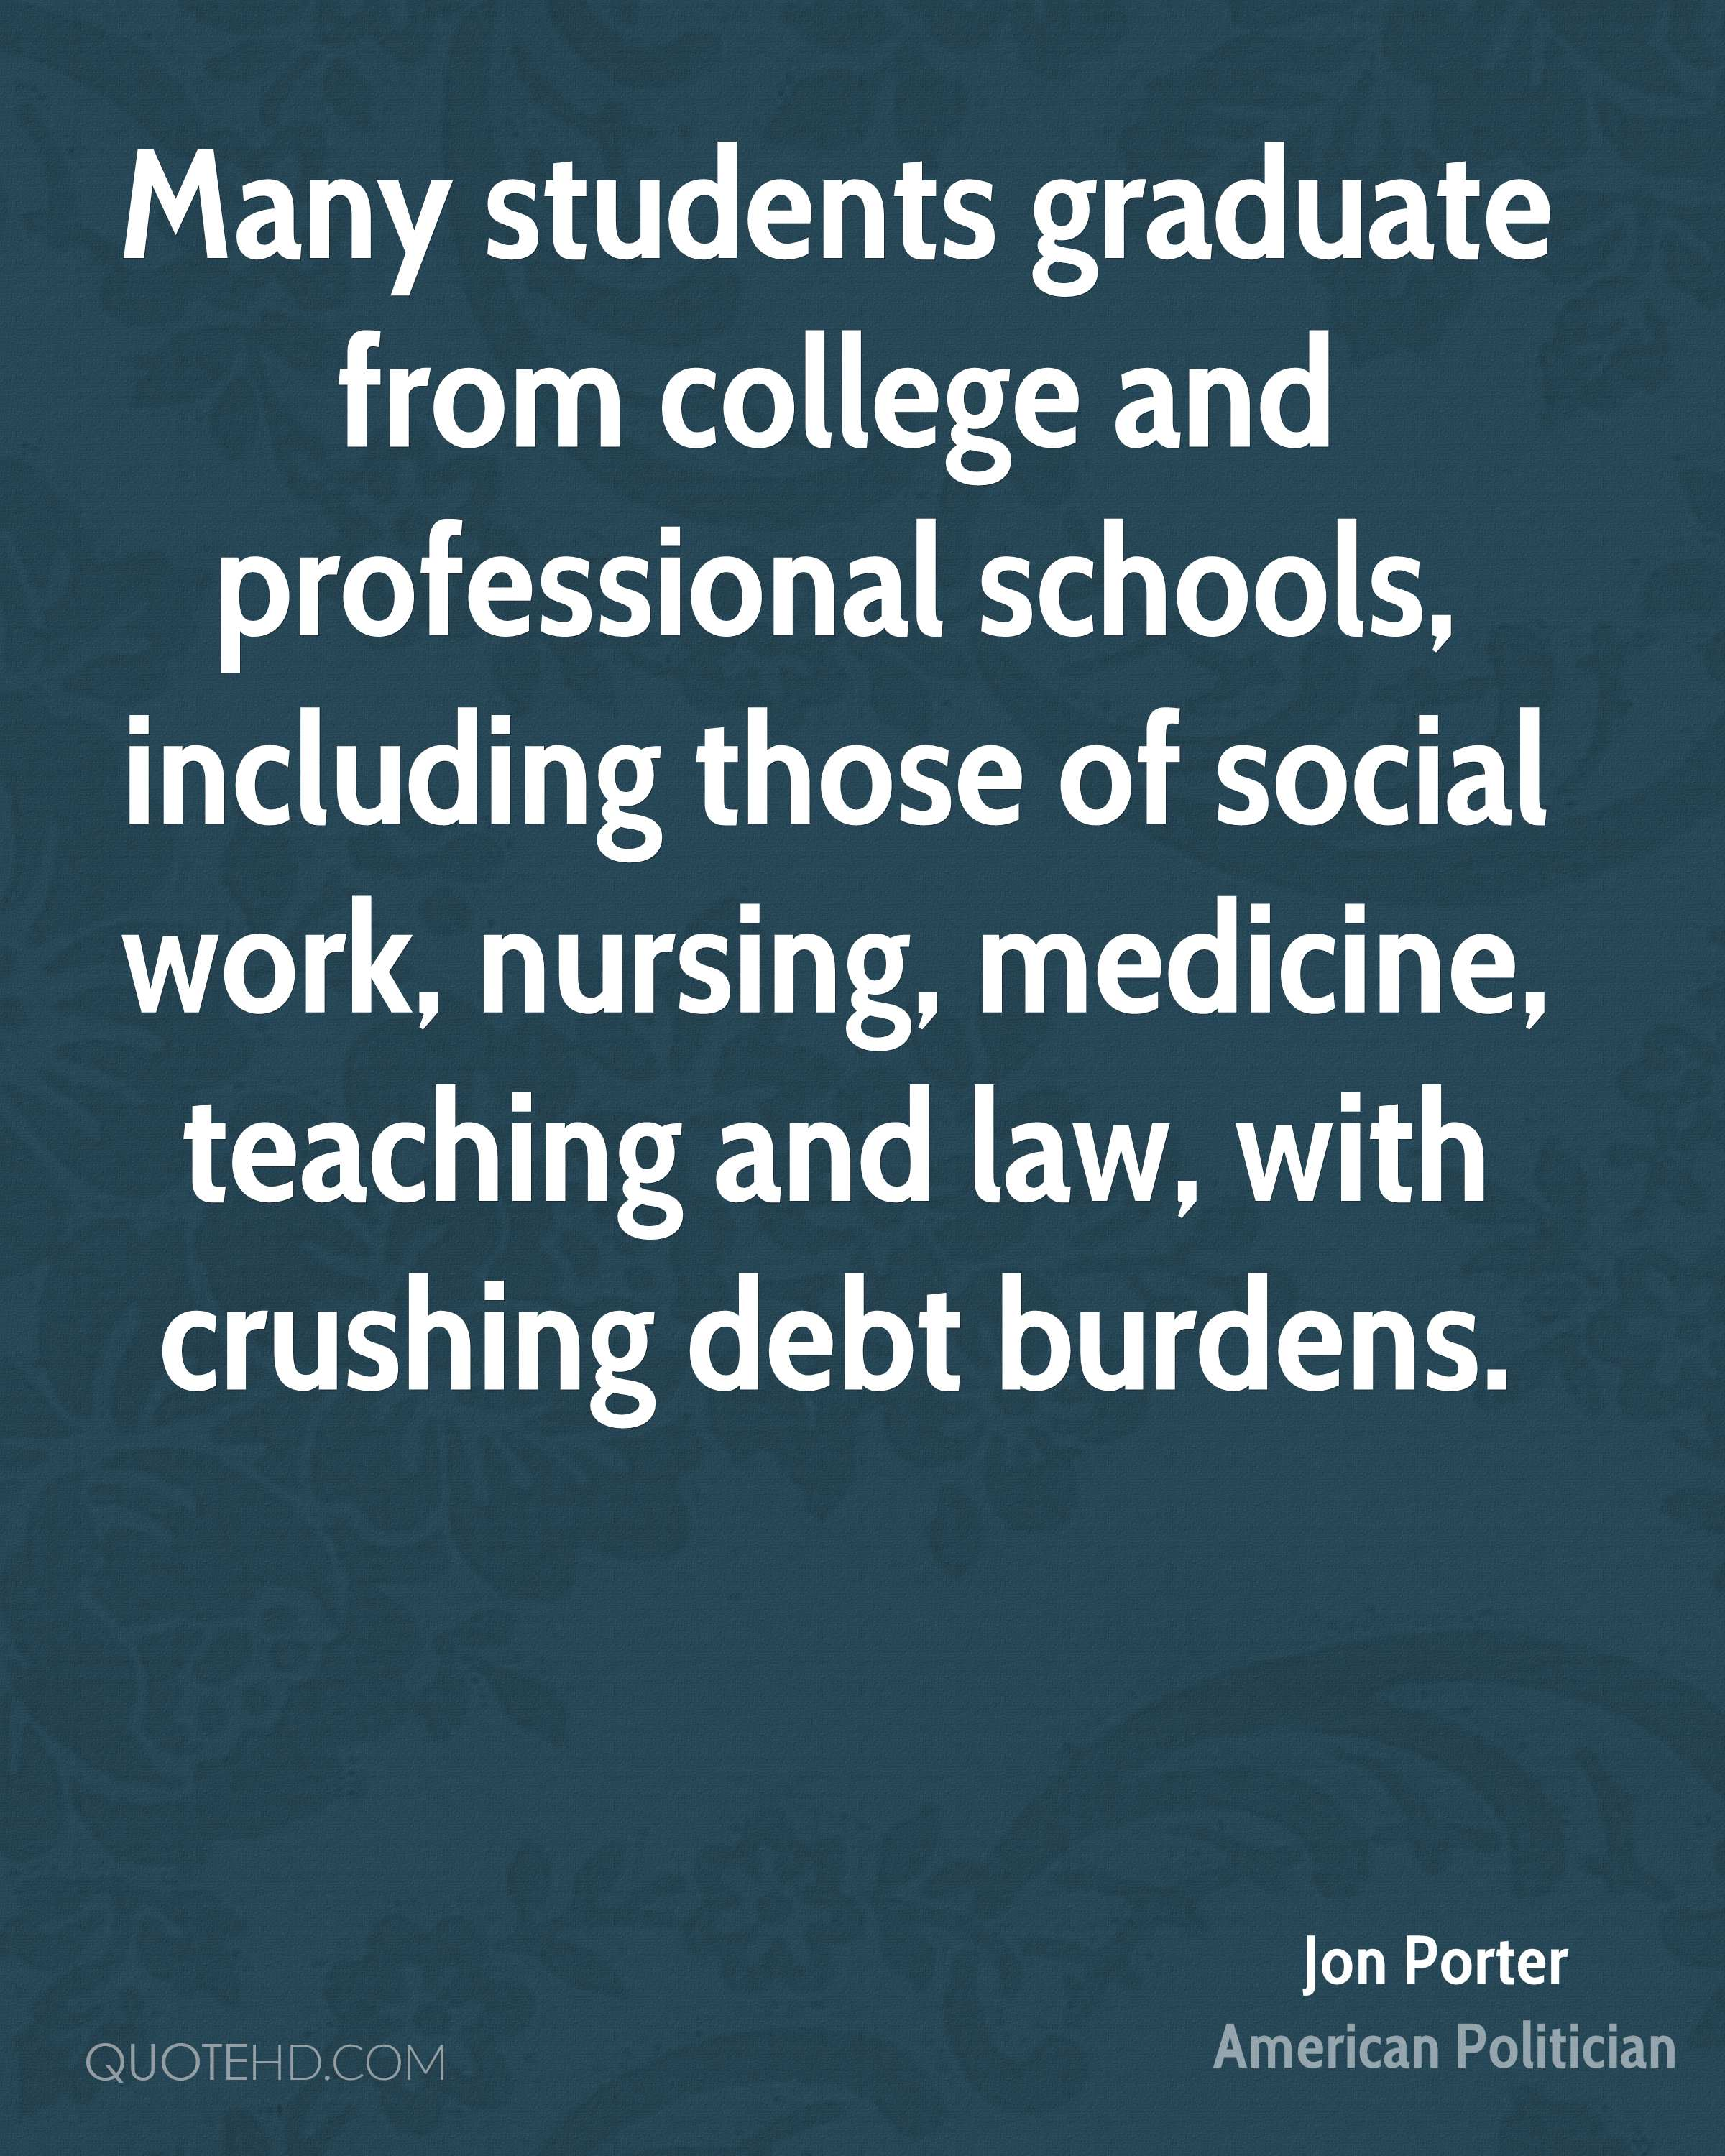 Many students graduate from college and professional schools, including those of social work, nursing, medicine, teaching and law, with crushing debt burdens.